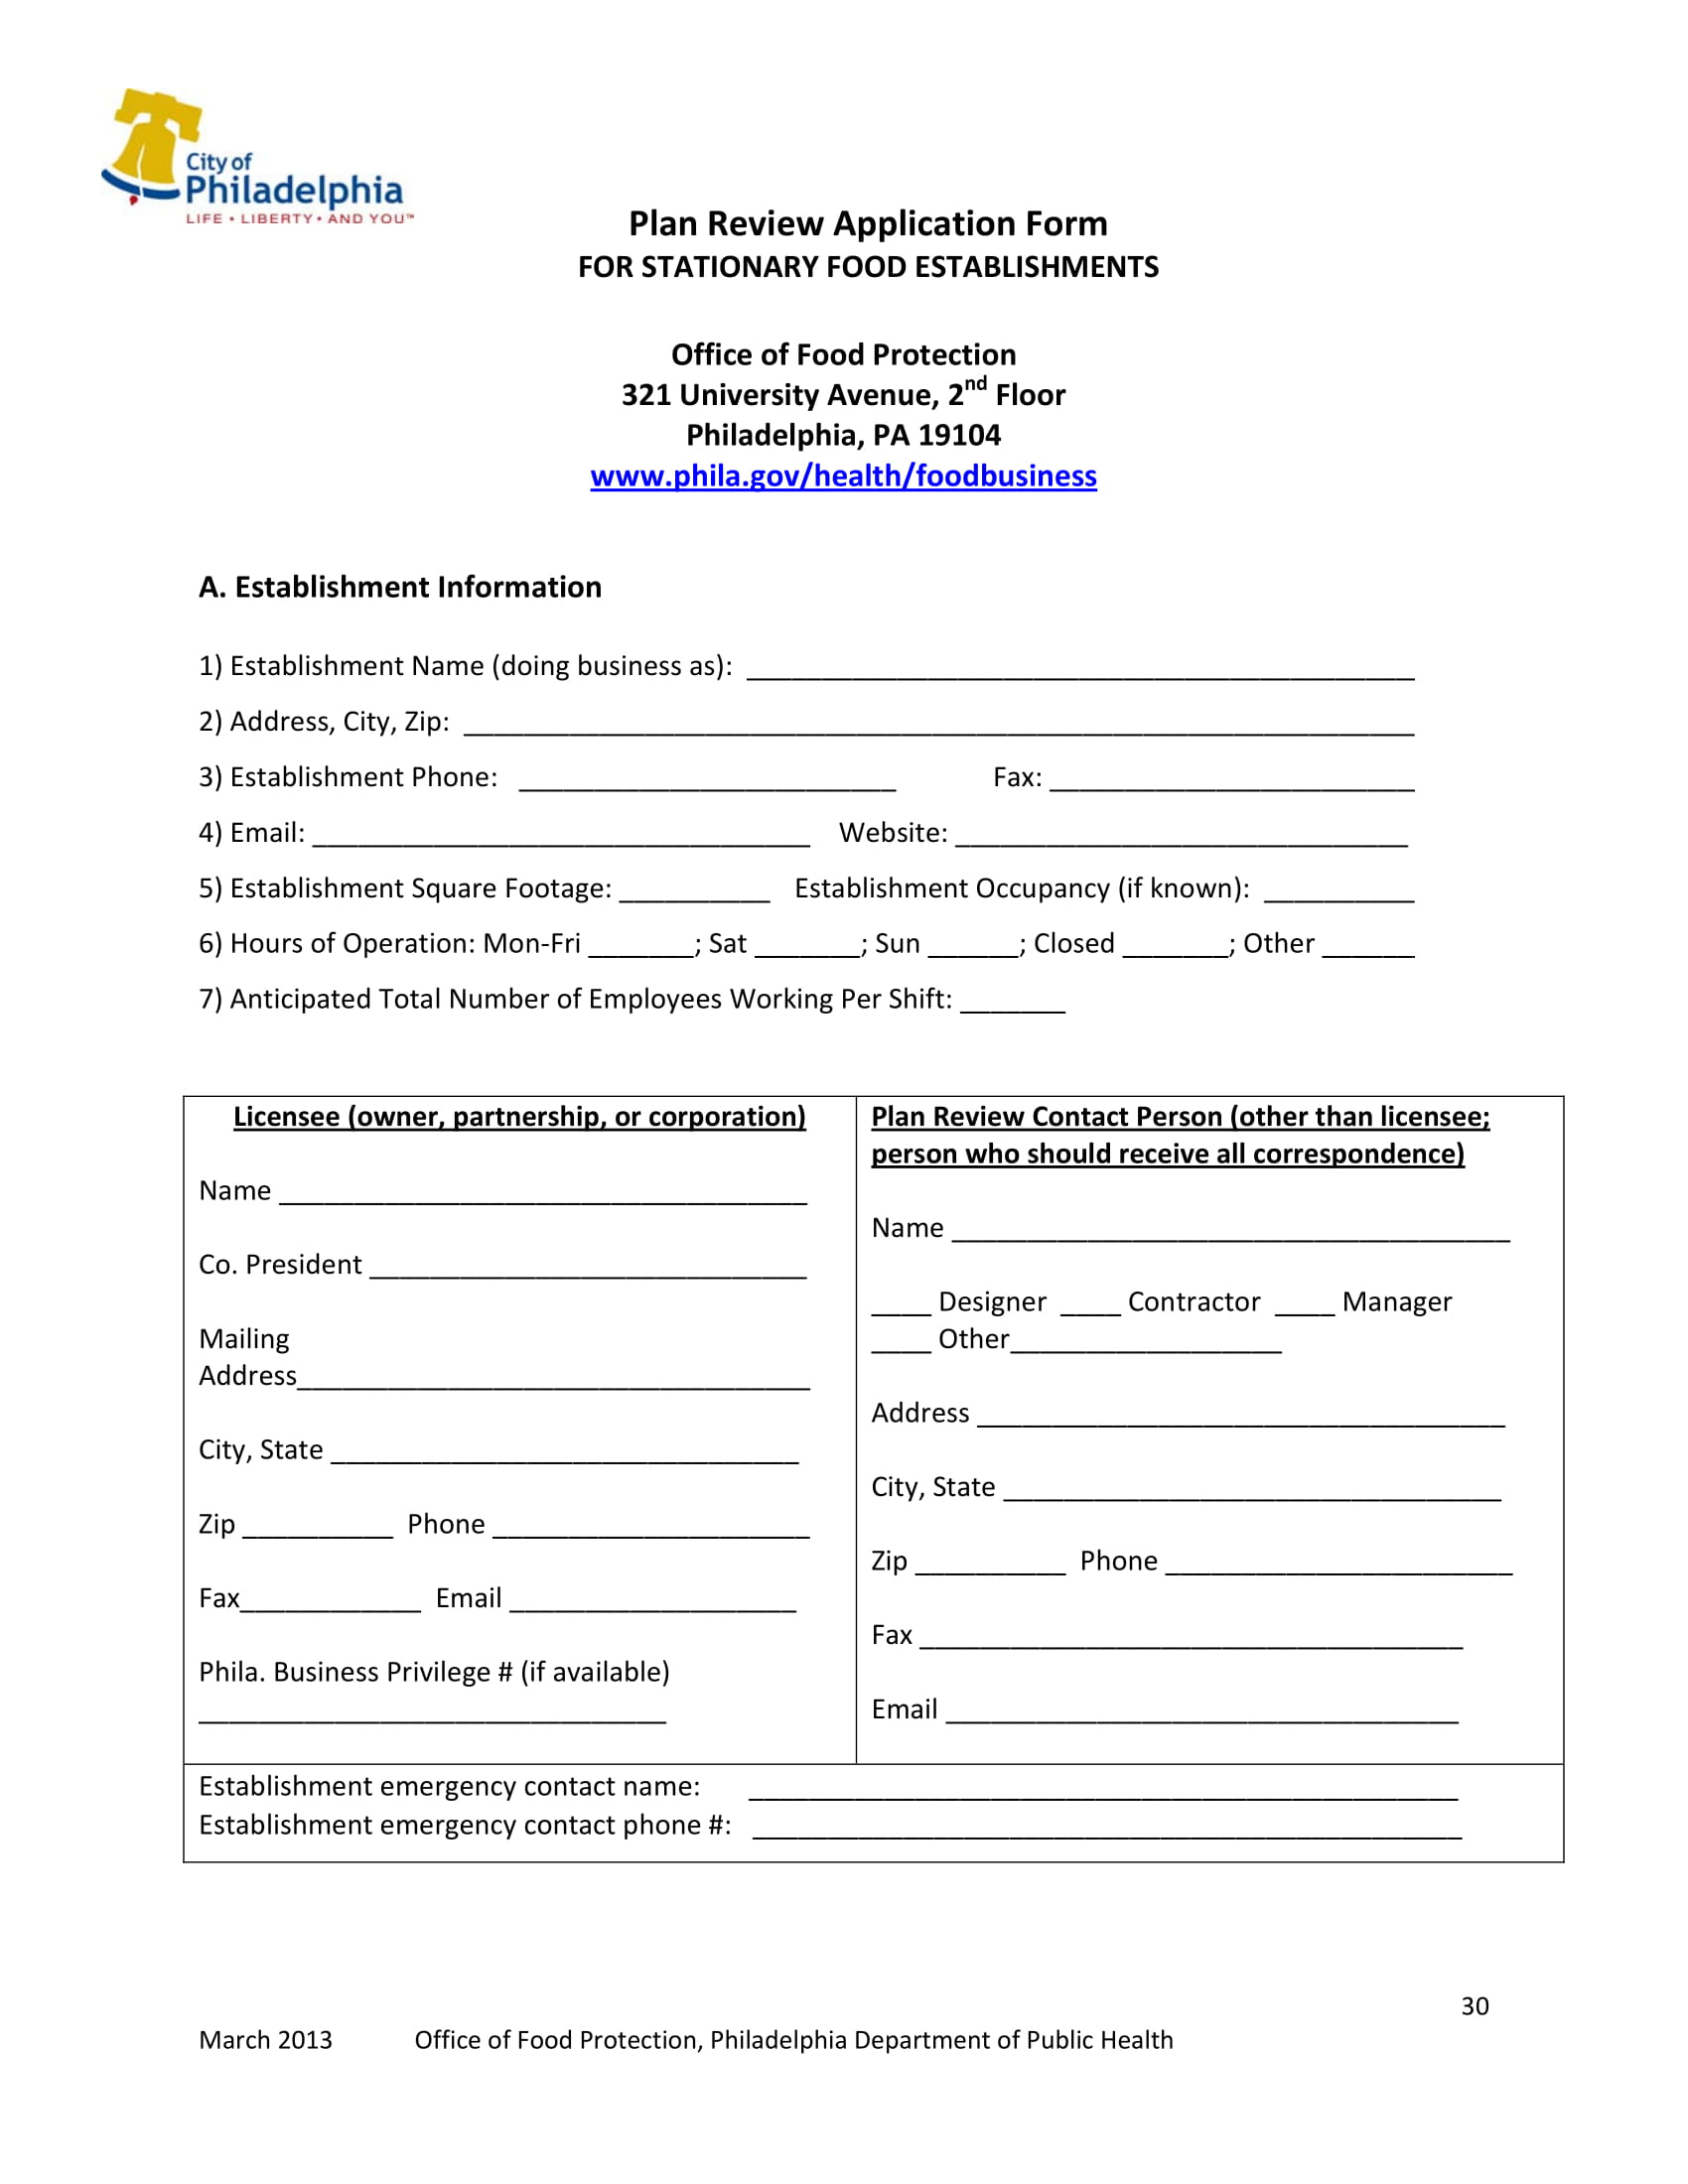 food establishment plan review form 30